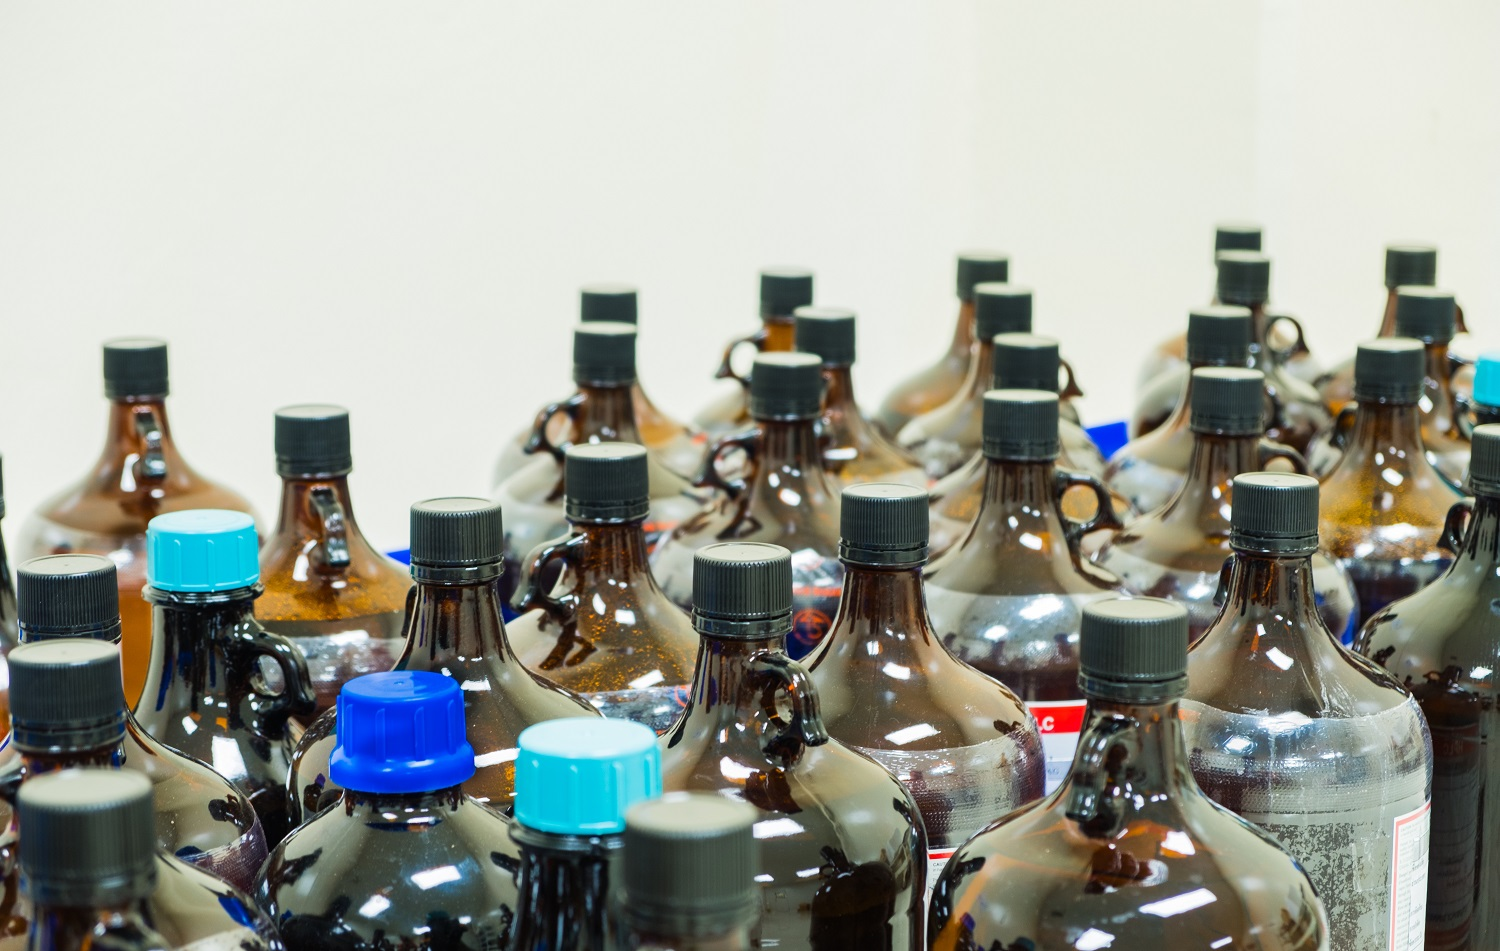 When and Where to make Hazardous Waste Determination in a Laboratory.